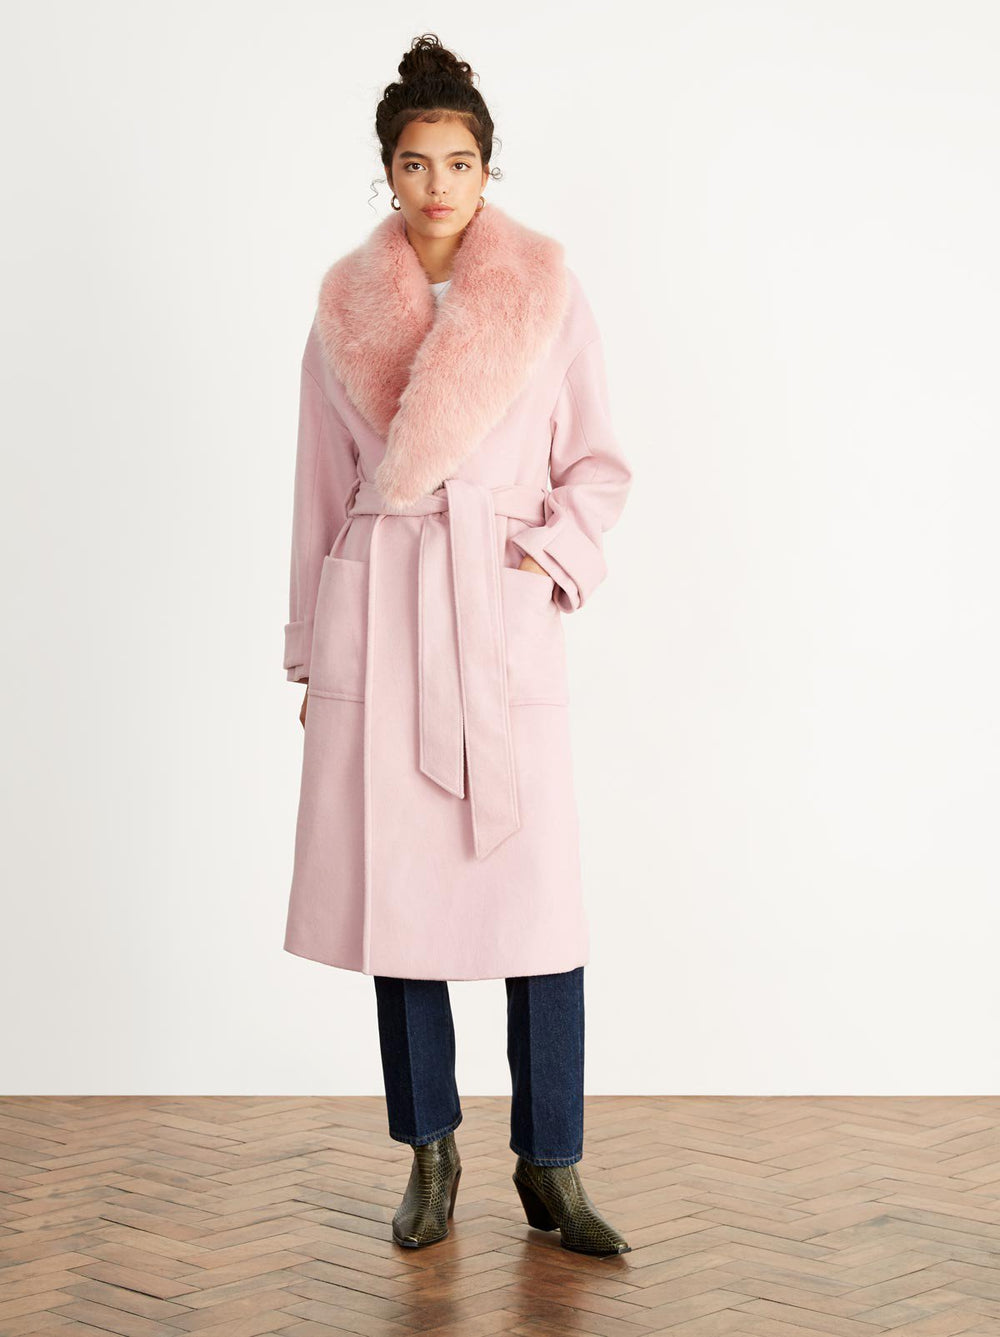 Ava Pink Wool Blend Coat by KITRI Studio